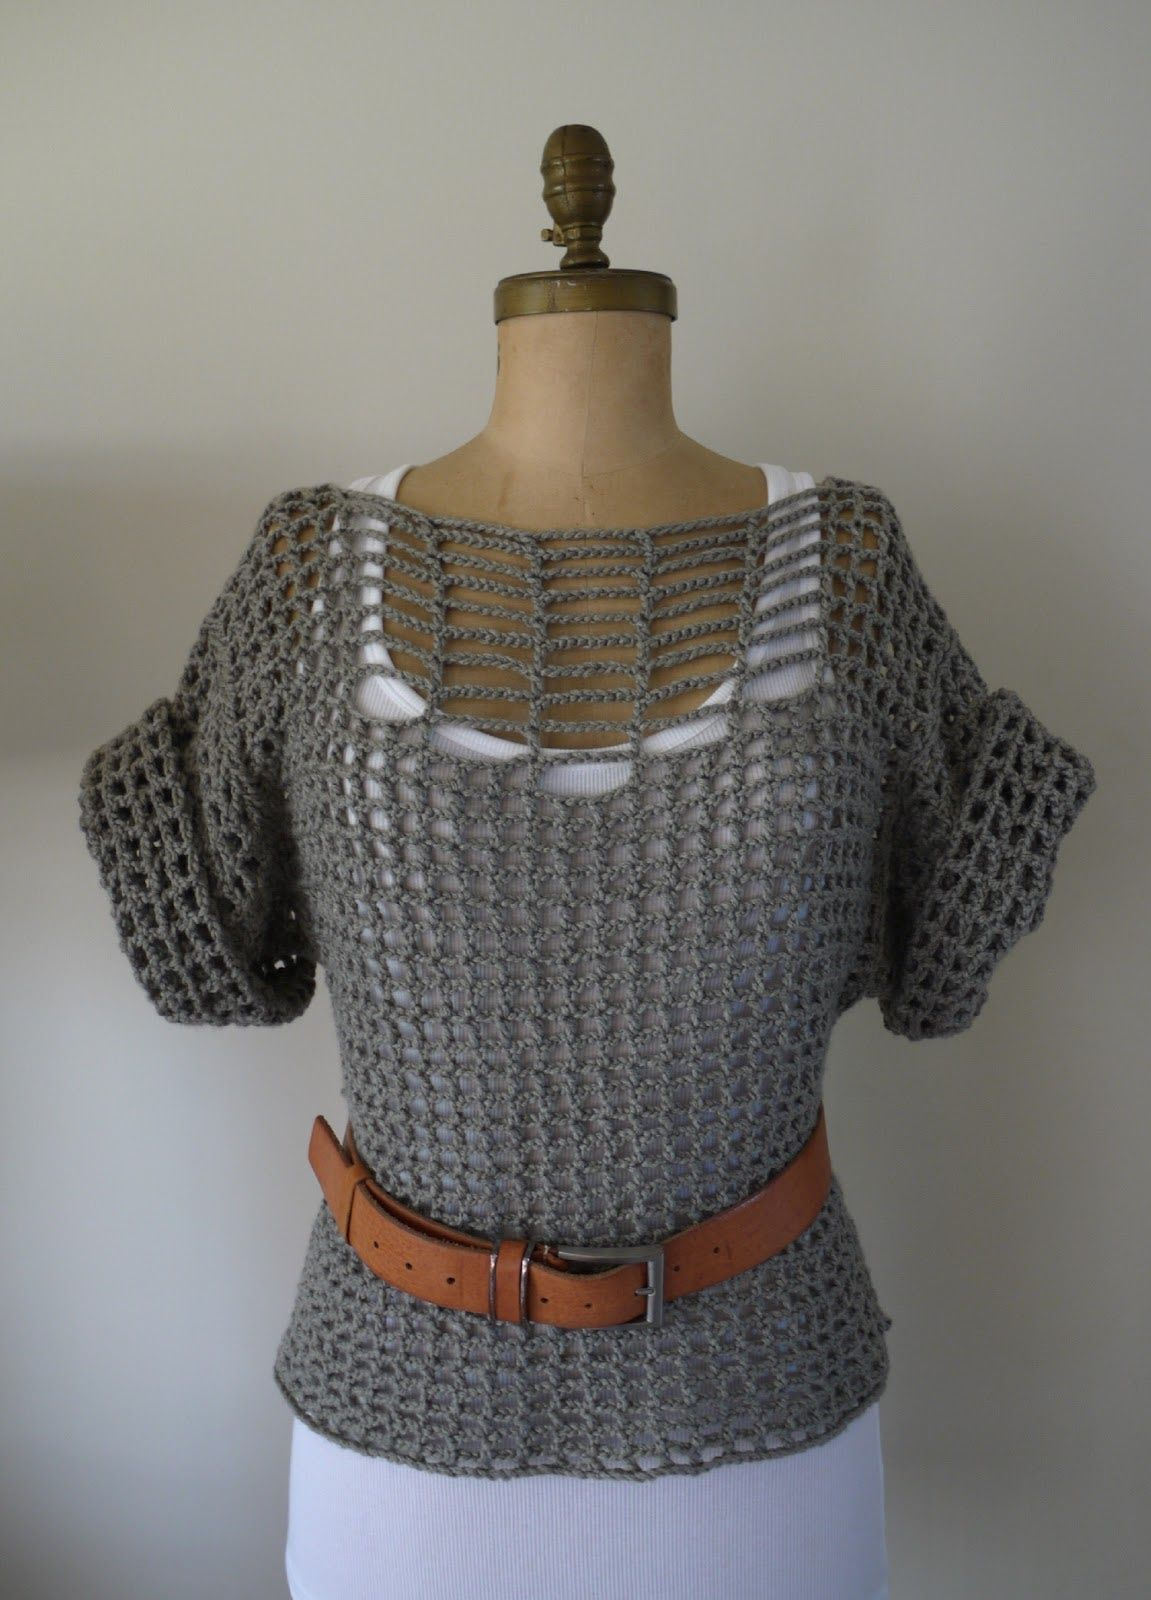 A crochet summer top made out of rectangle pieces